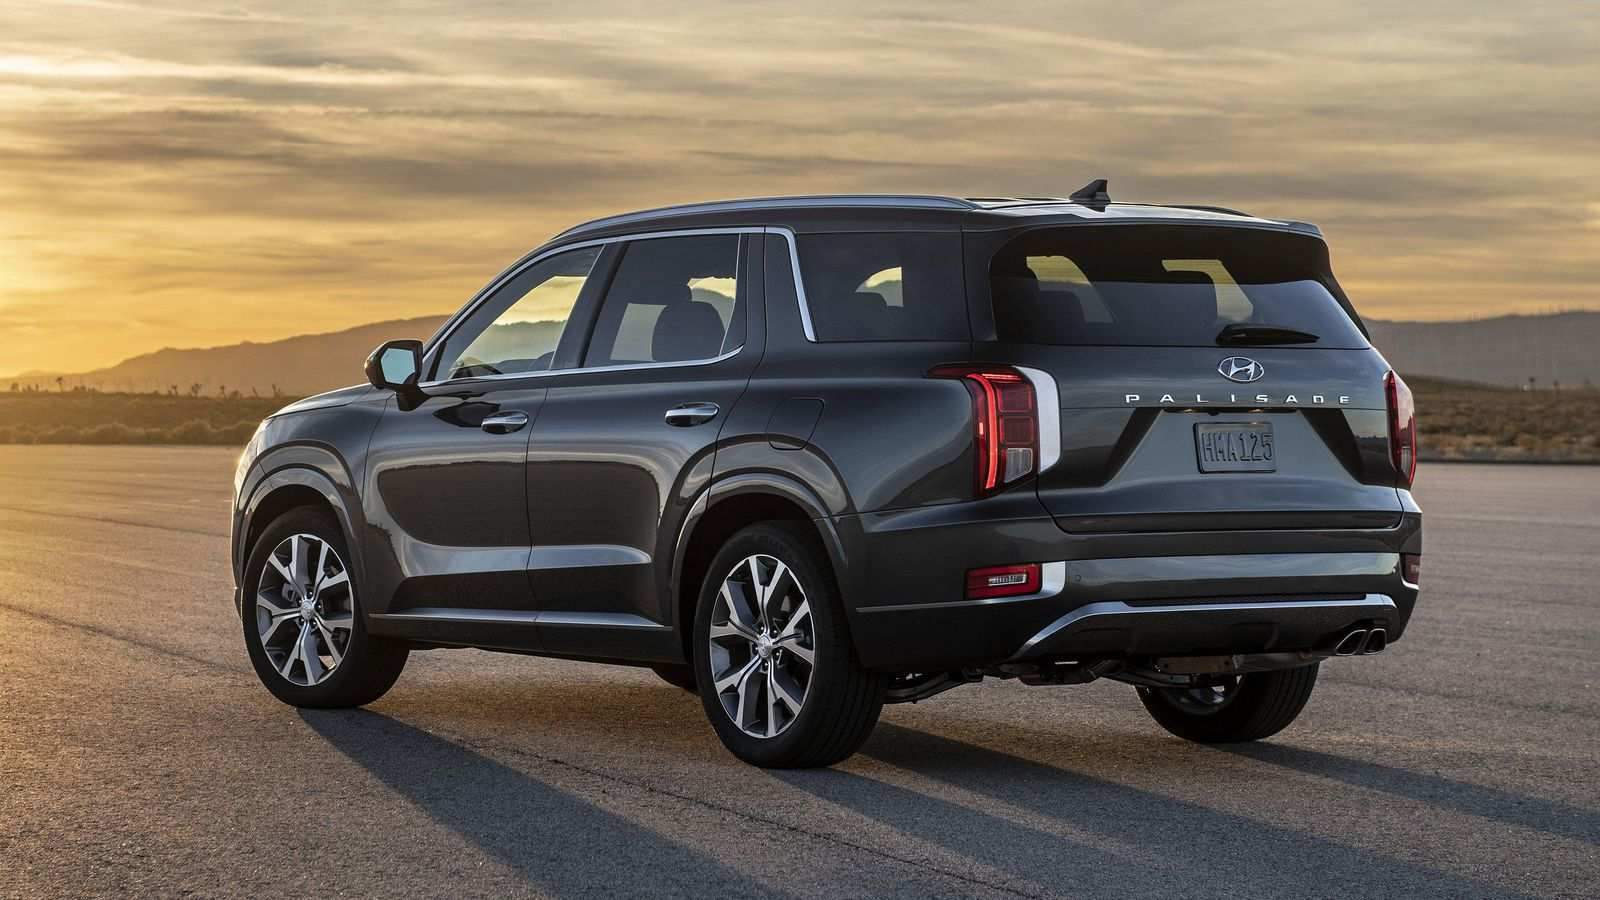 48 New When Will The 2020 Hyundai Palisade Be Available Photos